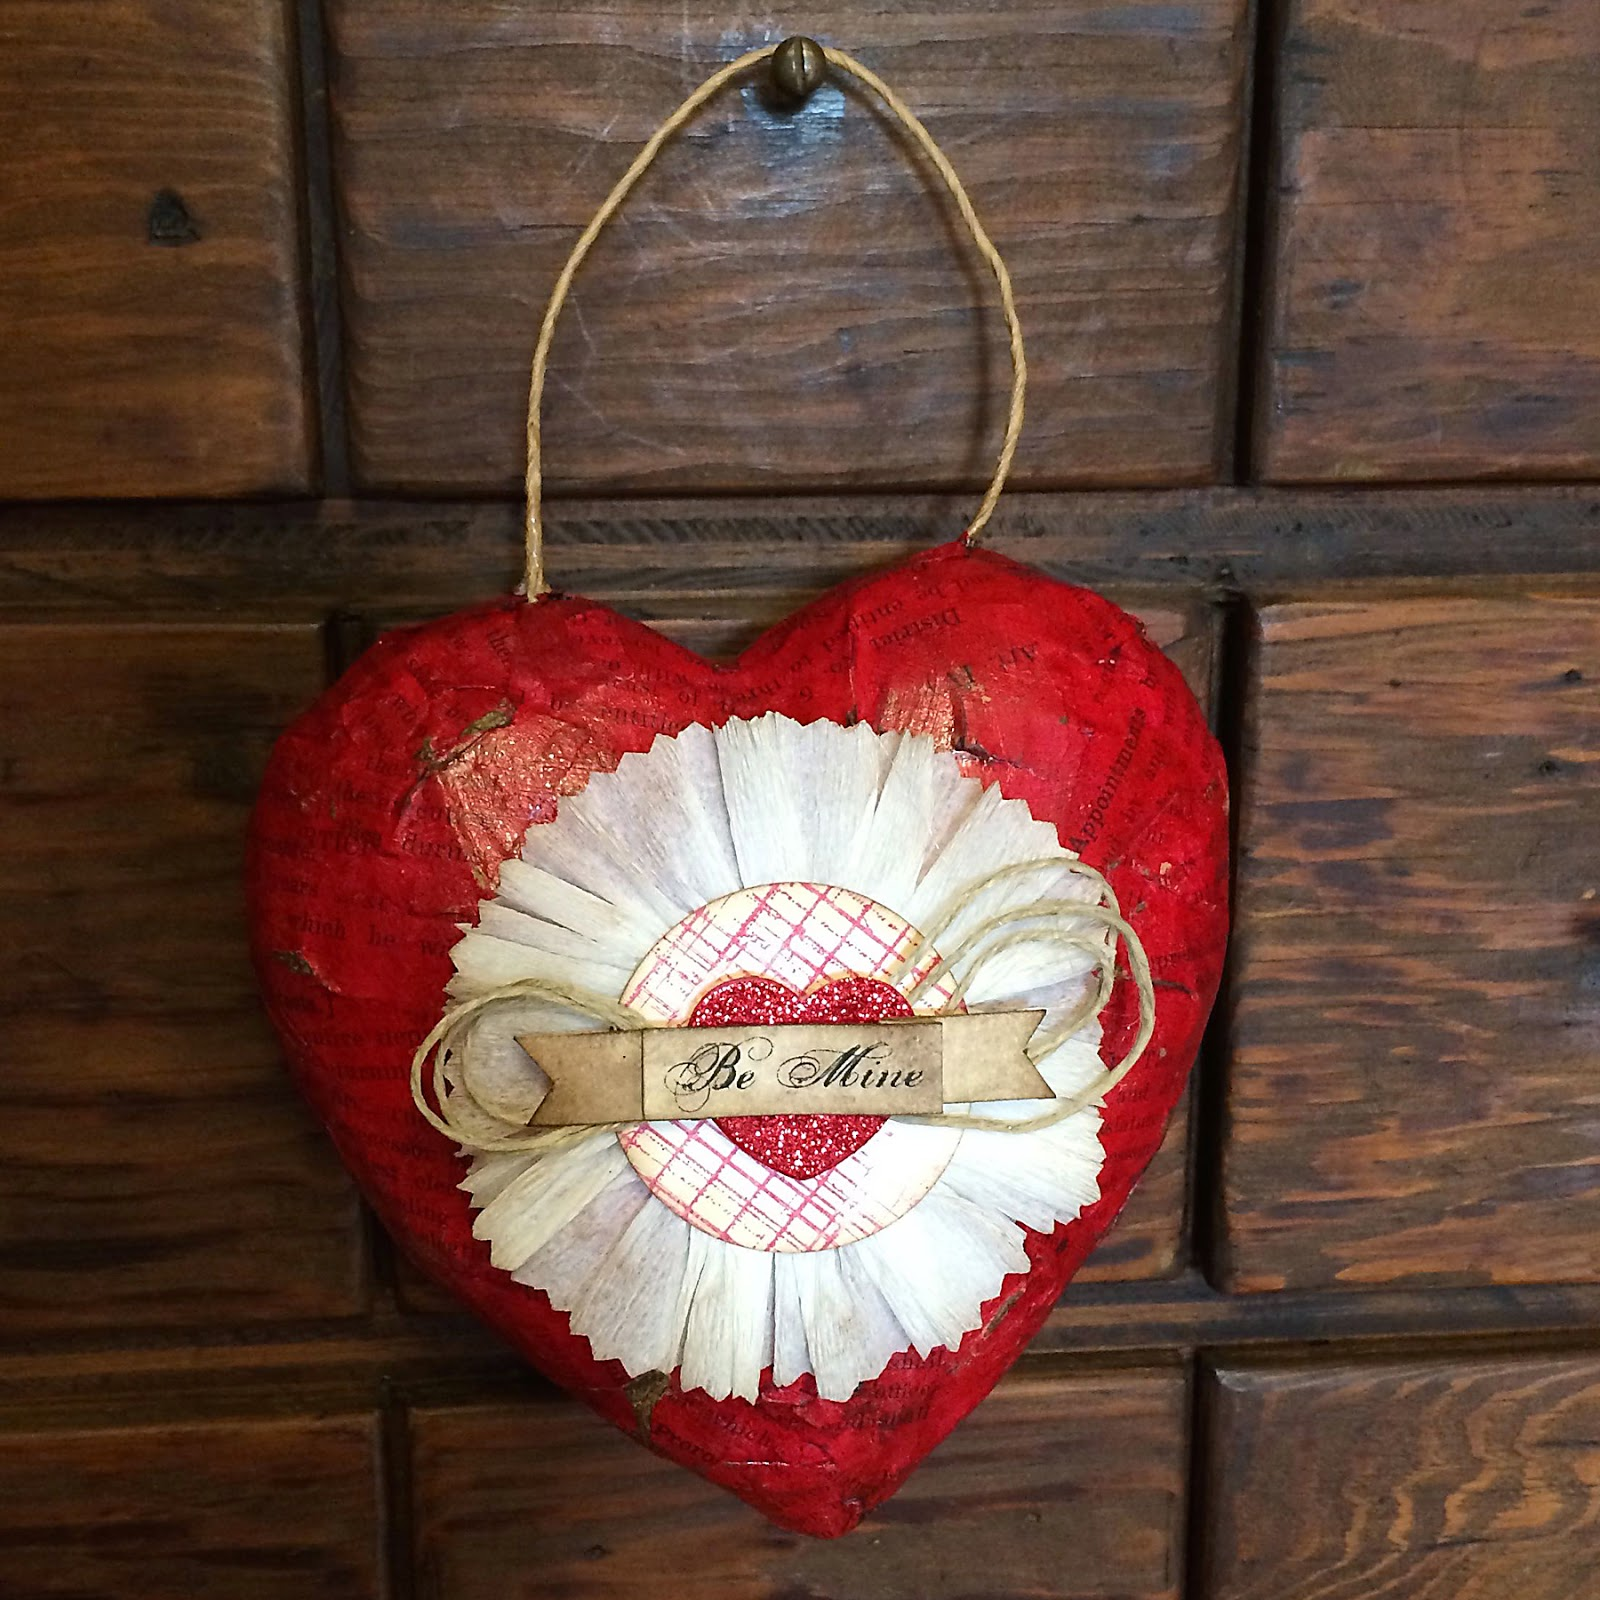 https://www.etsy.com/listing/216782834/primitive-valentine-heart-hanger-be-mine?ref=listing-shop-header-0